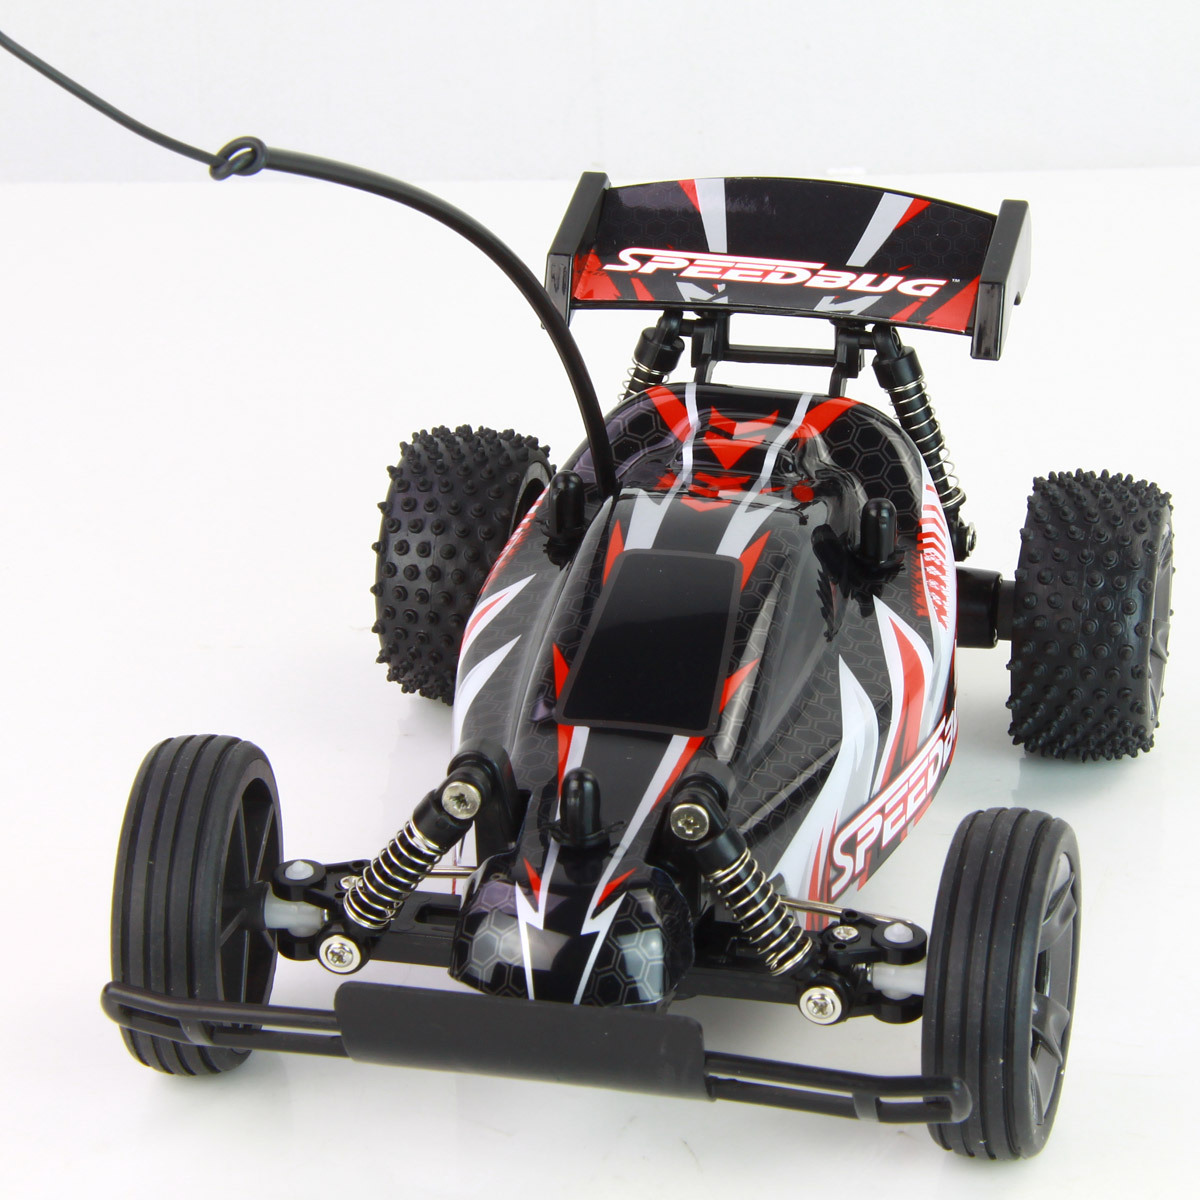 Xq rc car charge toy car 22km high speed drift remote control car 4wd remote control automobile race(China (Mainland))